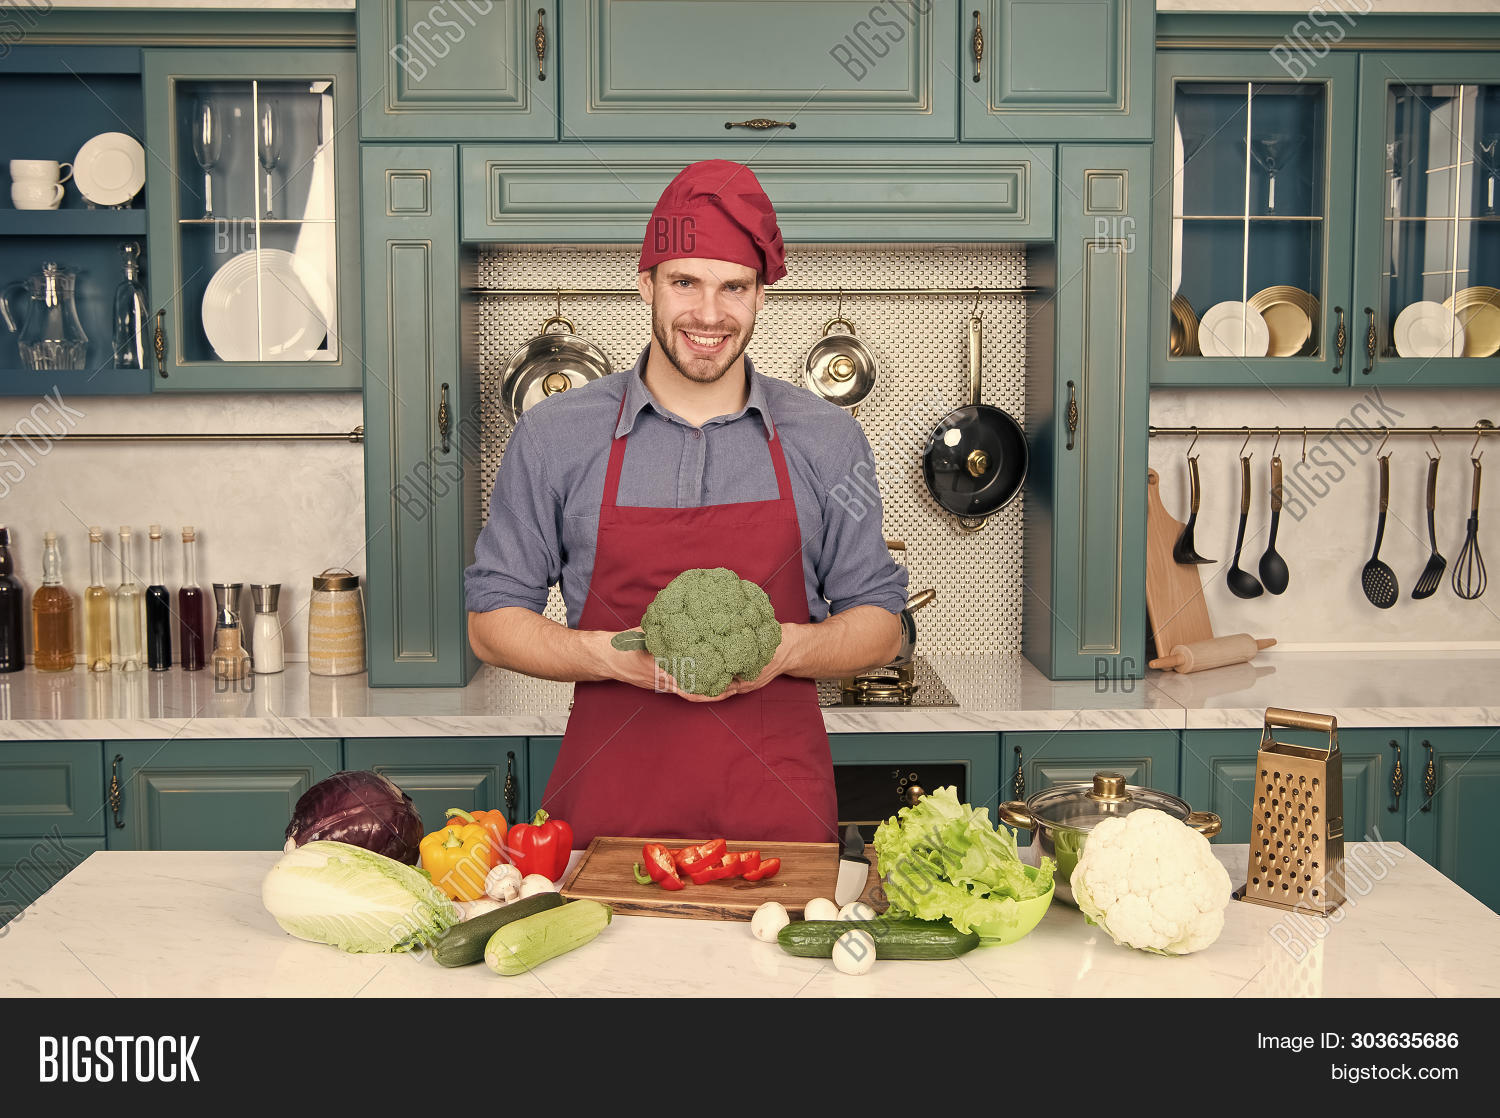 apron,beard,bearded,broccoli,cabbage,cauliflower,chef,concept,cook,cooking,cucumber,cuisine,culinary,delicious,diet,dieting,dish,domestic,food,fresh,gastronomical,guy,handsome,harvest,health,healthy,ingredient,kitchen,man,meal,mushrooms,mustache,pepper,recipe,restaurant,rich,salad,table,taste,tools,unshaven,utensils,vegetable,vegetarian,vitamin,wear,zucchini